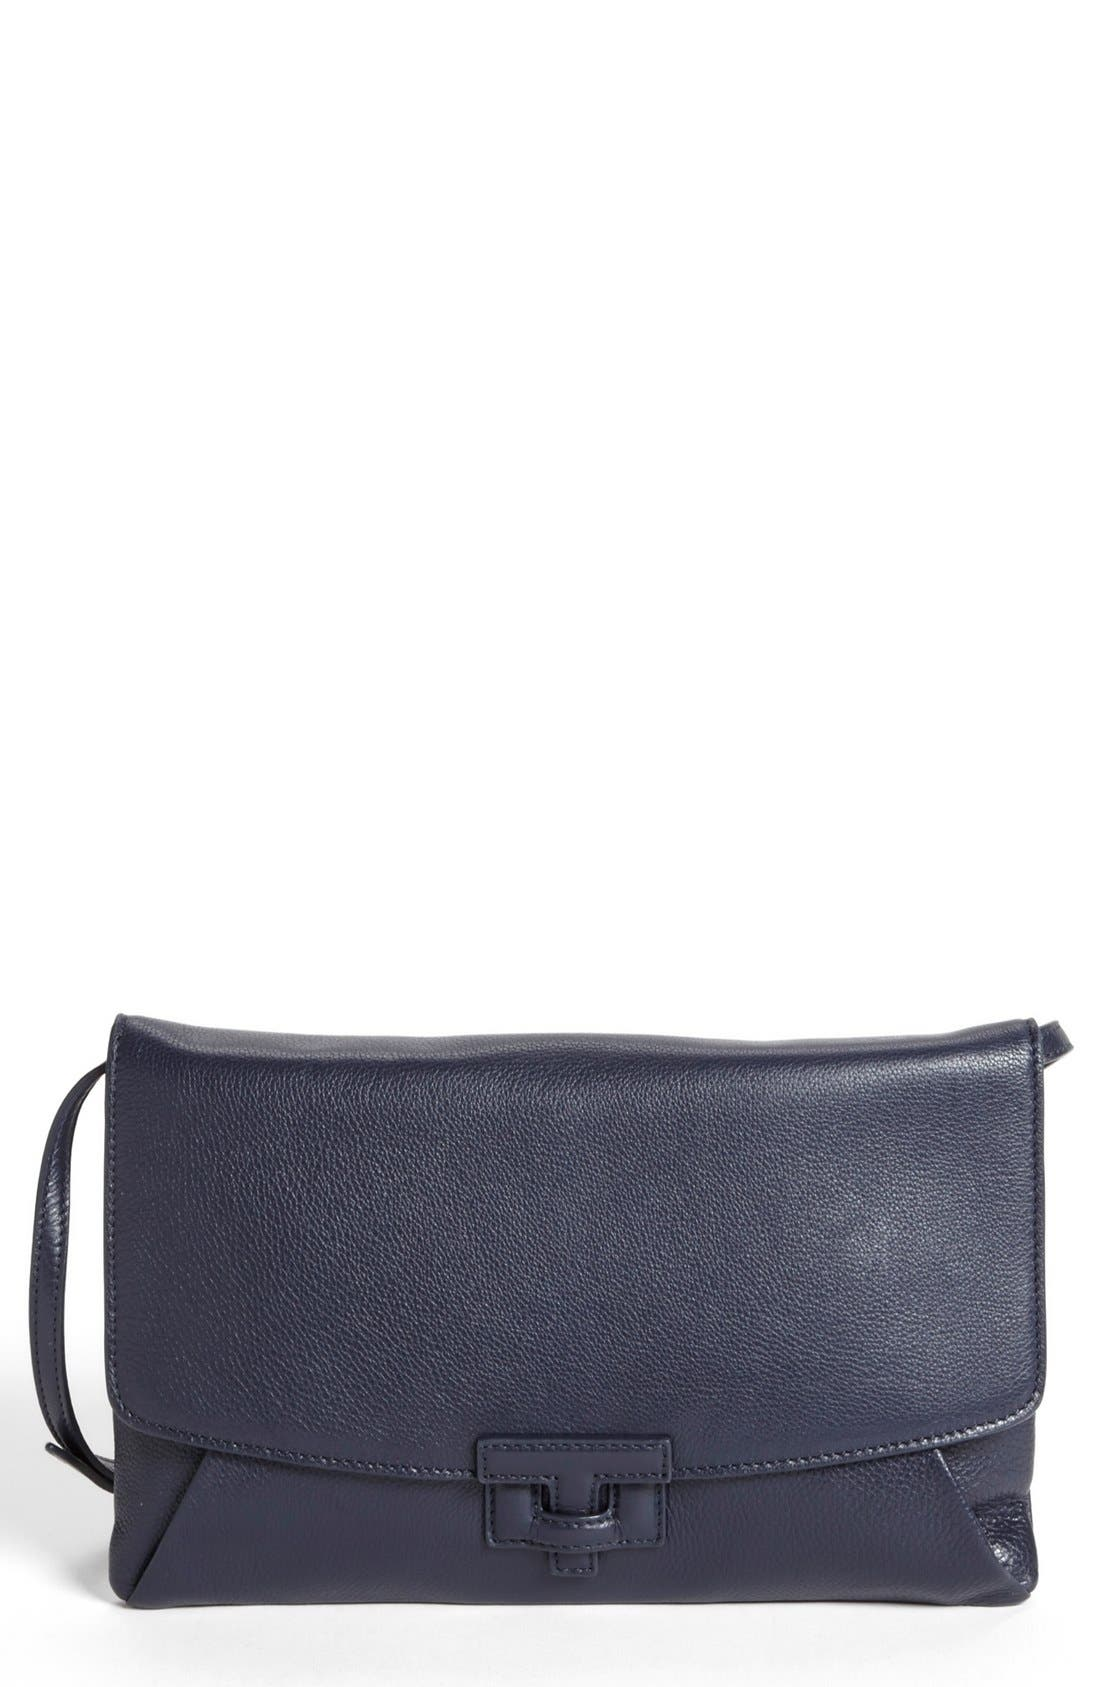 Main Image - Tory Burch Leather Envelope Clutch